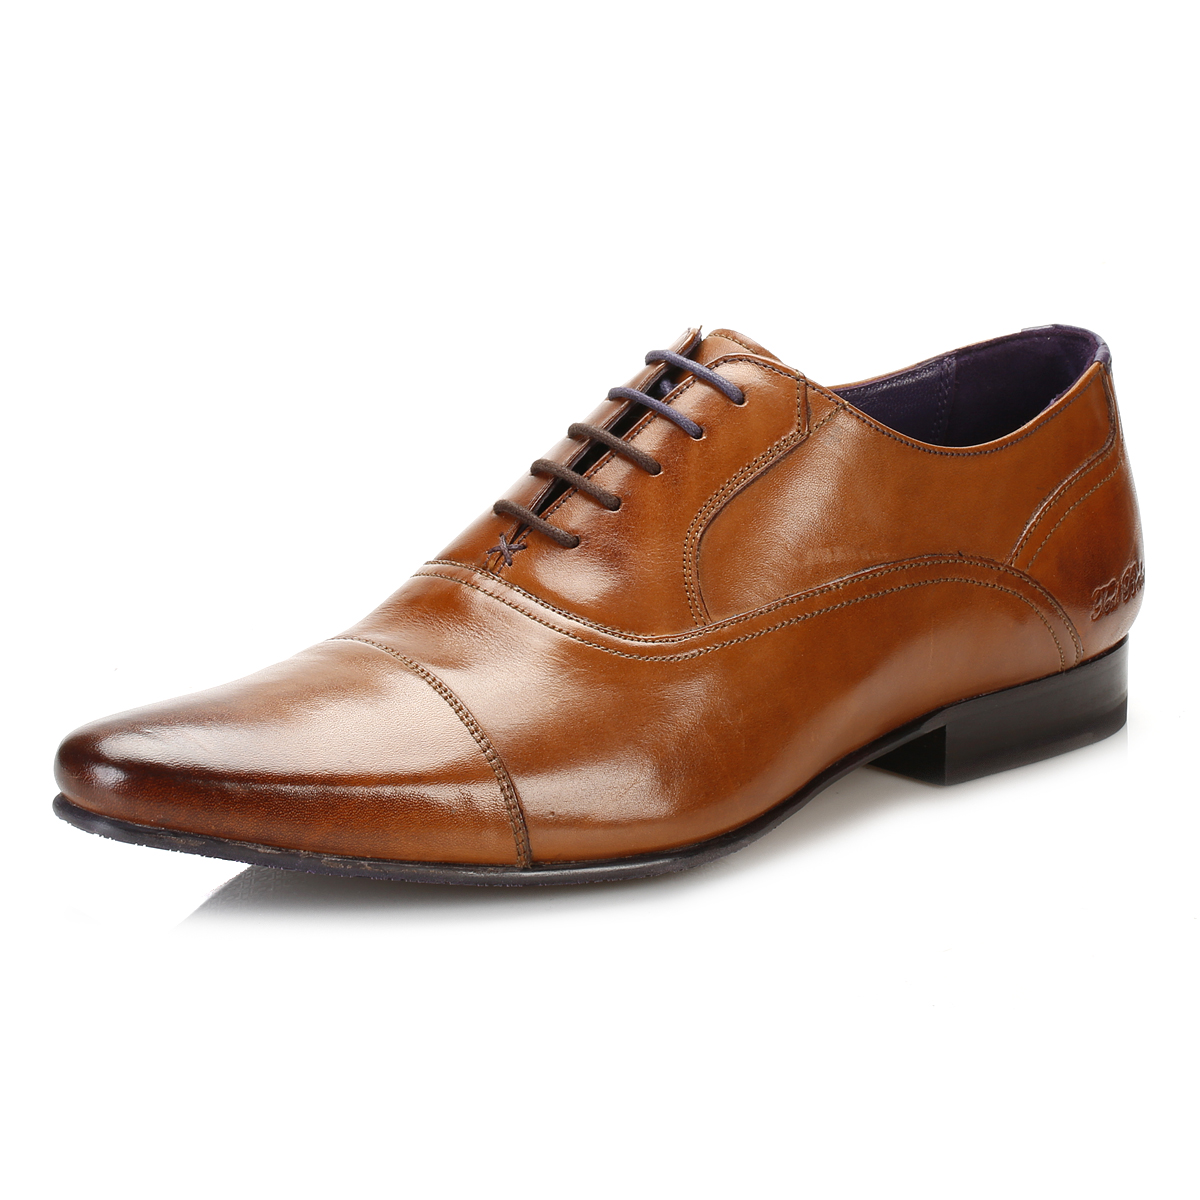 Ted Baker Mens Brown Dress Shoes